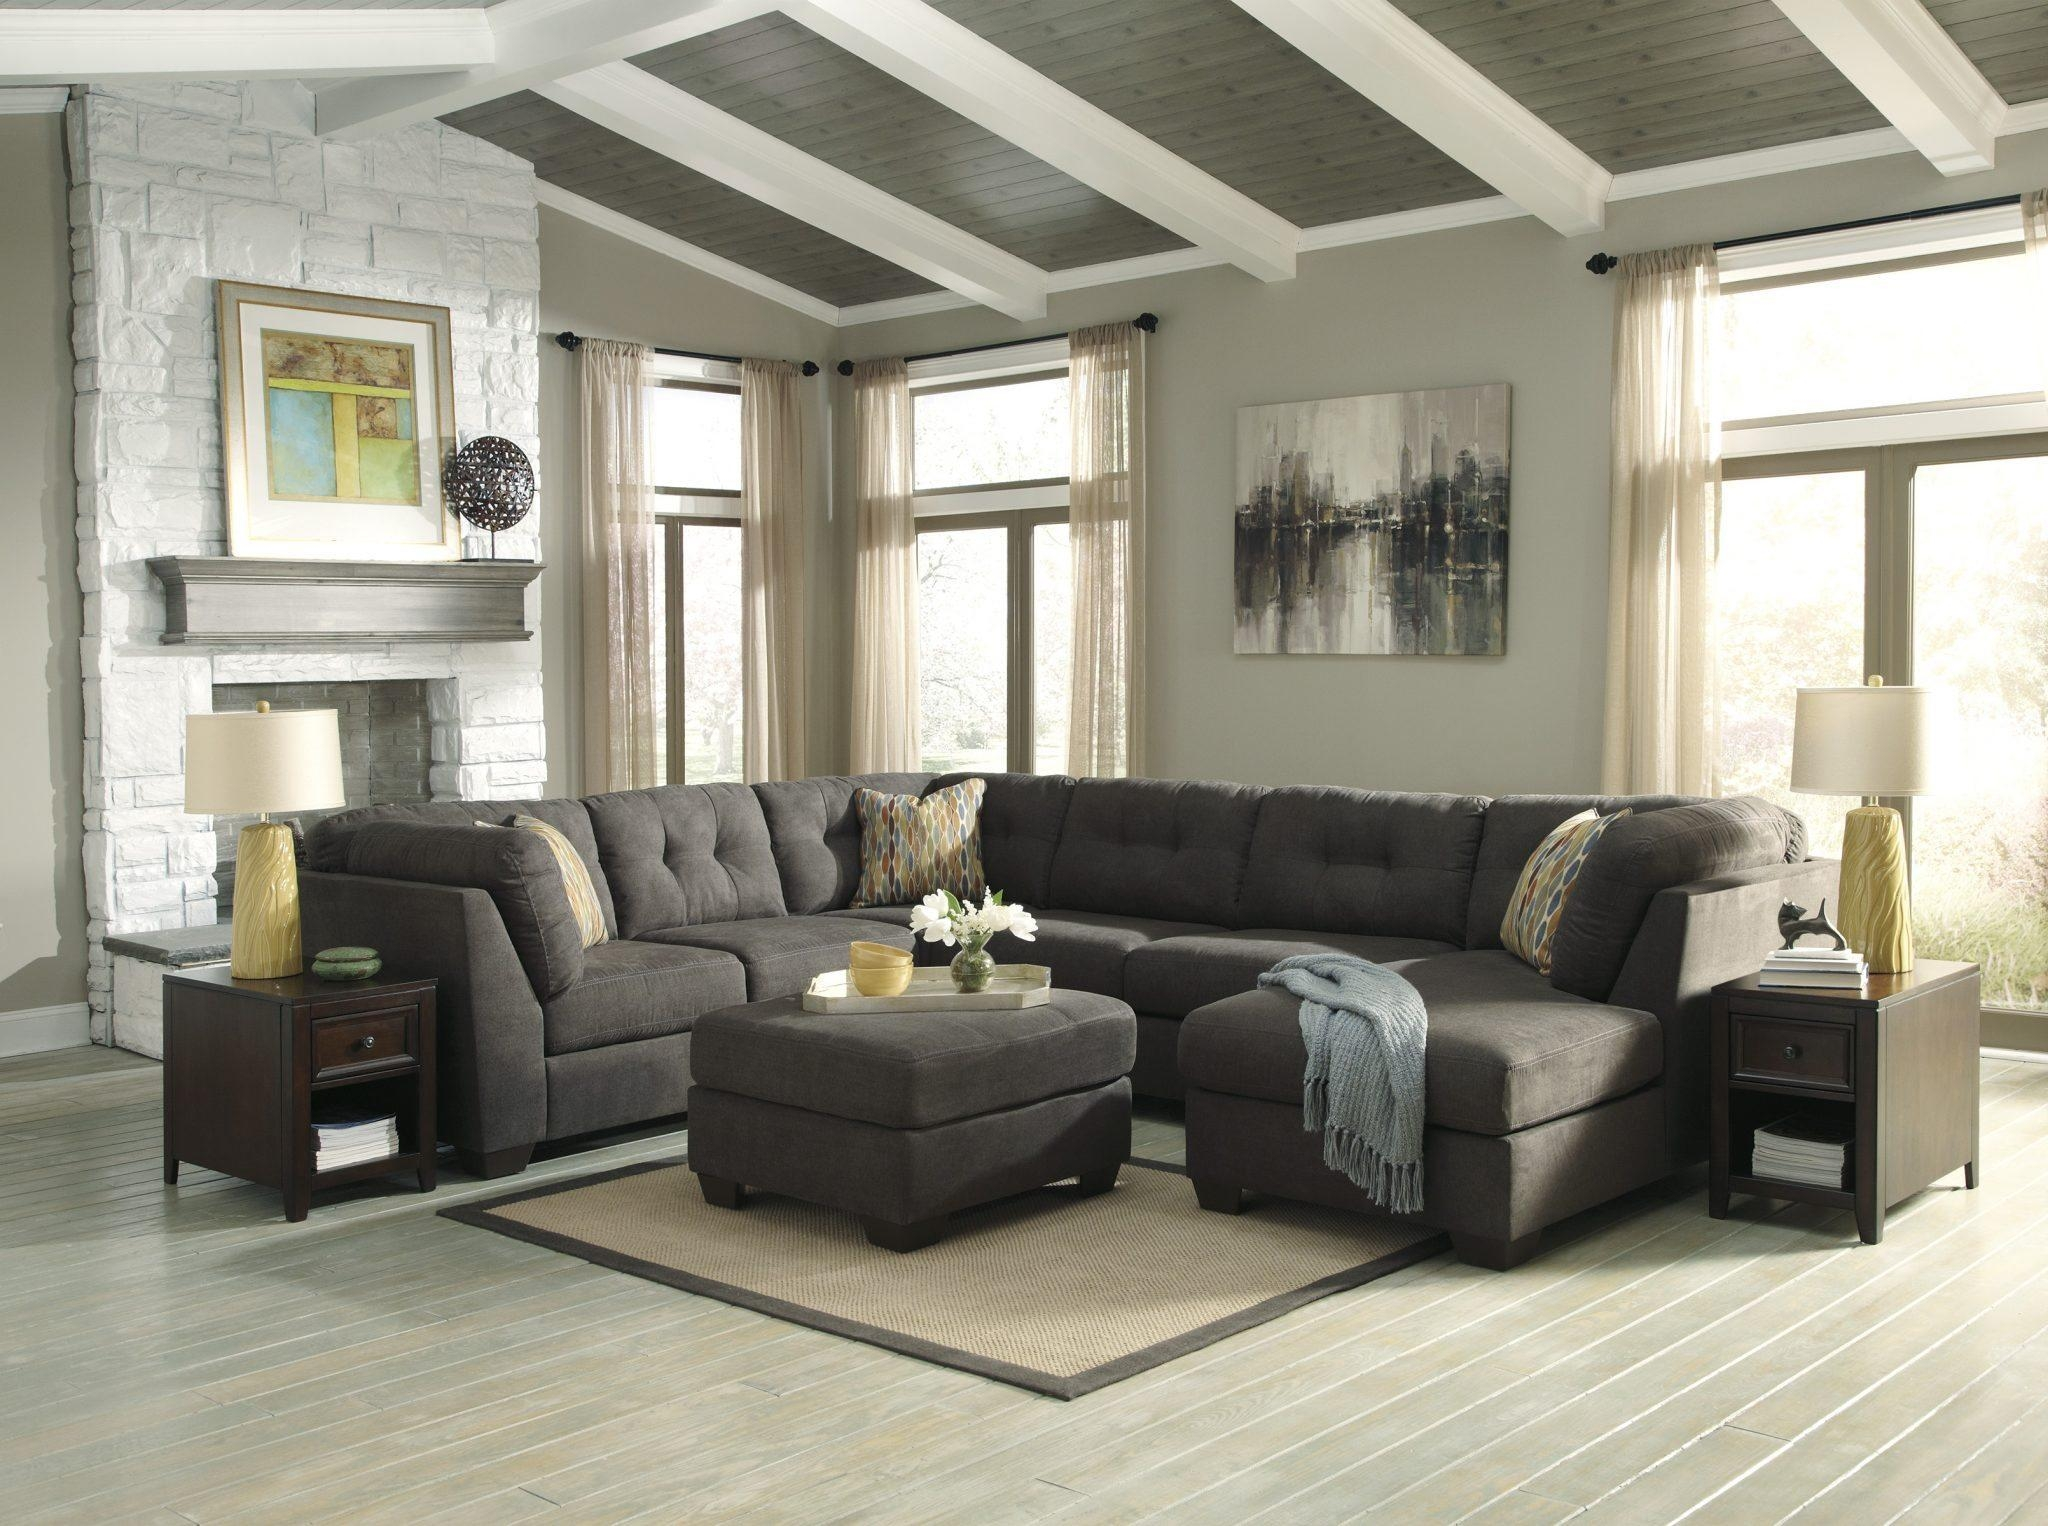 Best Furniture Mentor Oh: Furniture Store – Ashley Furniture Intended For Ashley Tufted Sofa (Image 9 of 20)